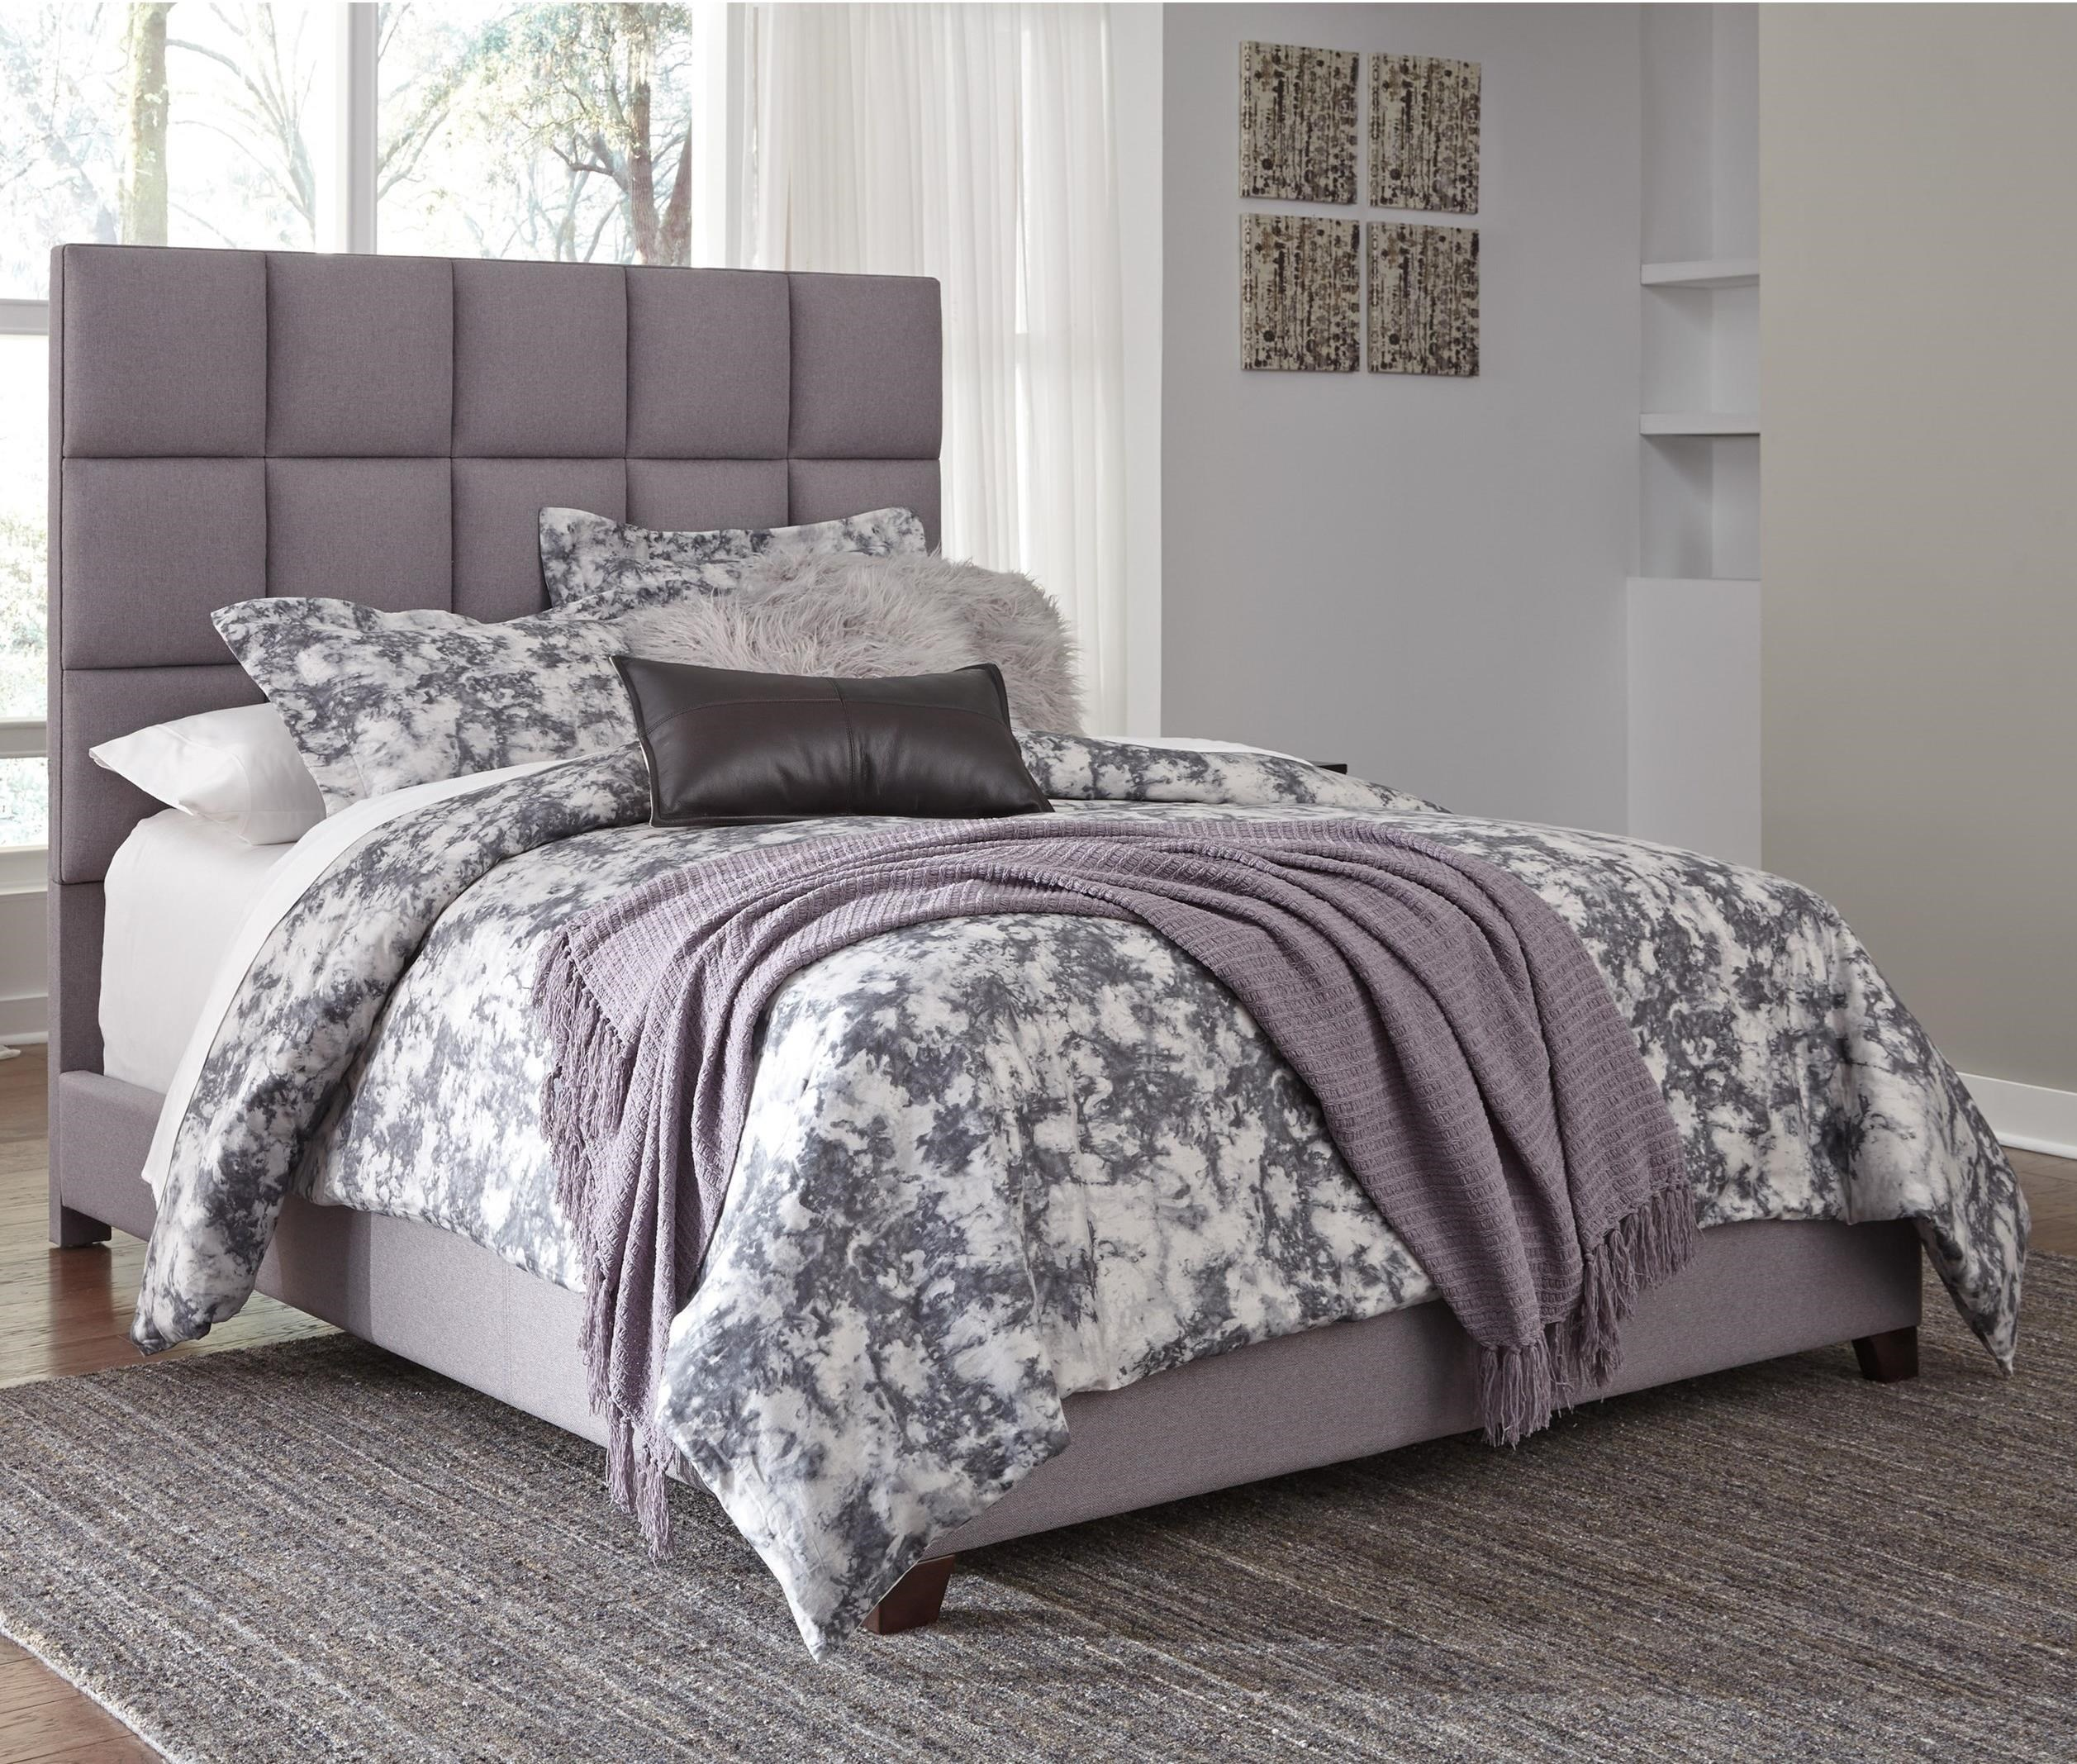 Dolante Dolante Queen Upholstered Bed by Ashley at Morris Home